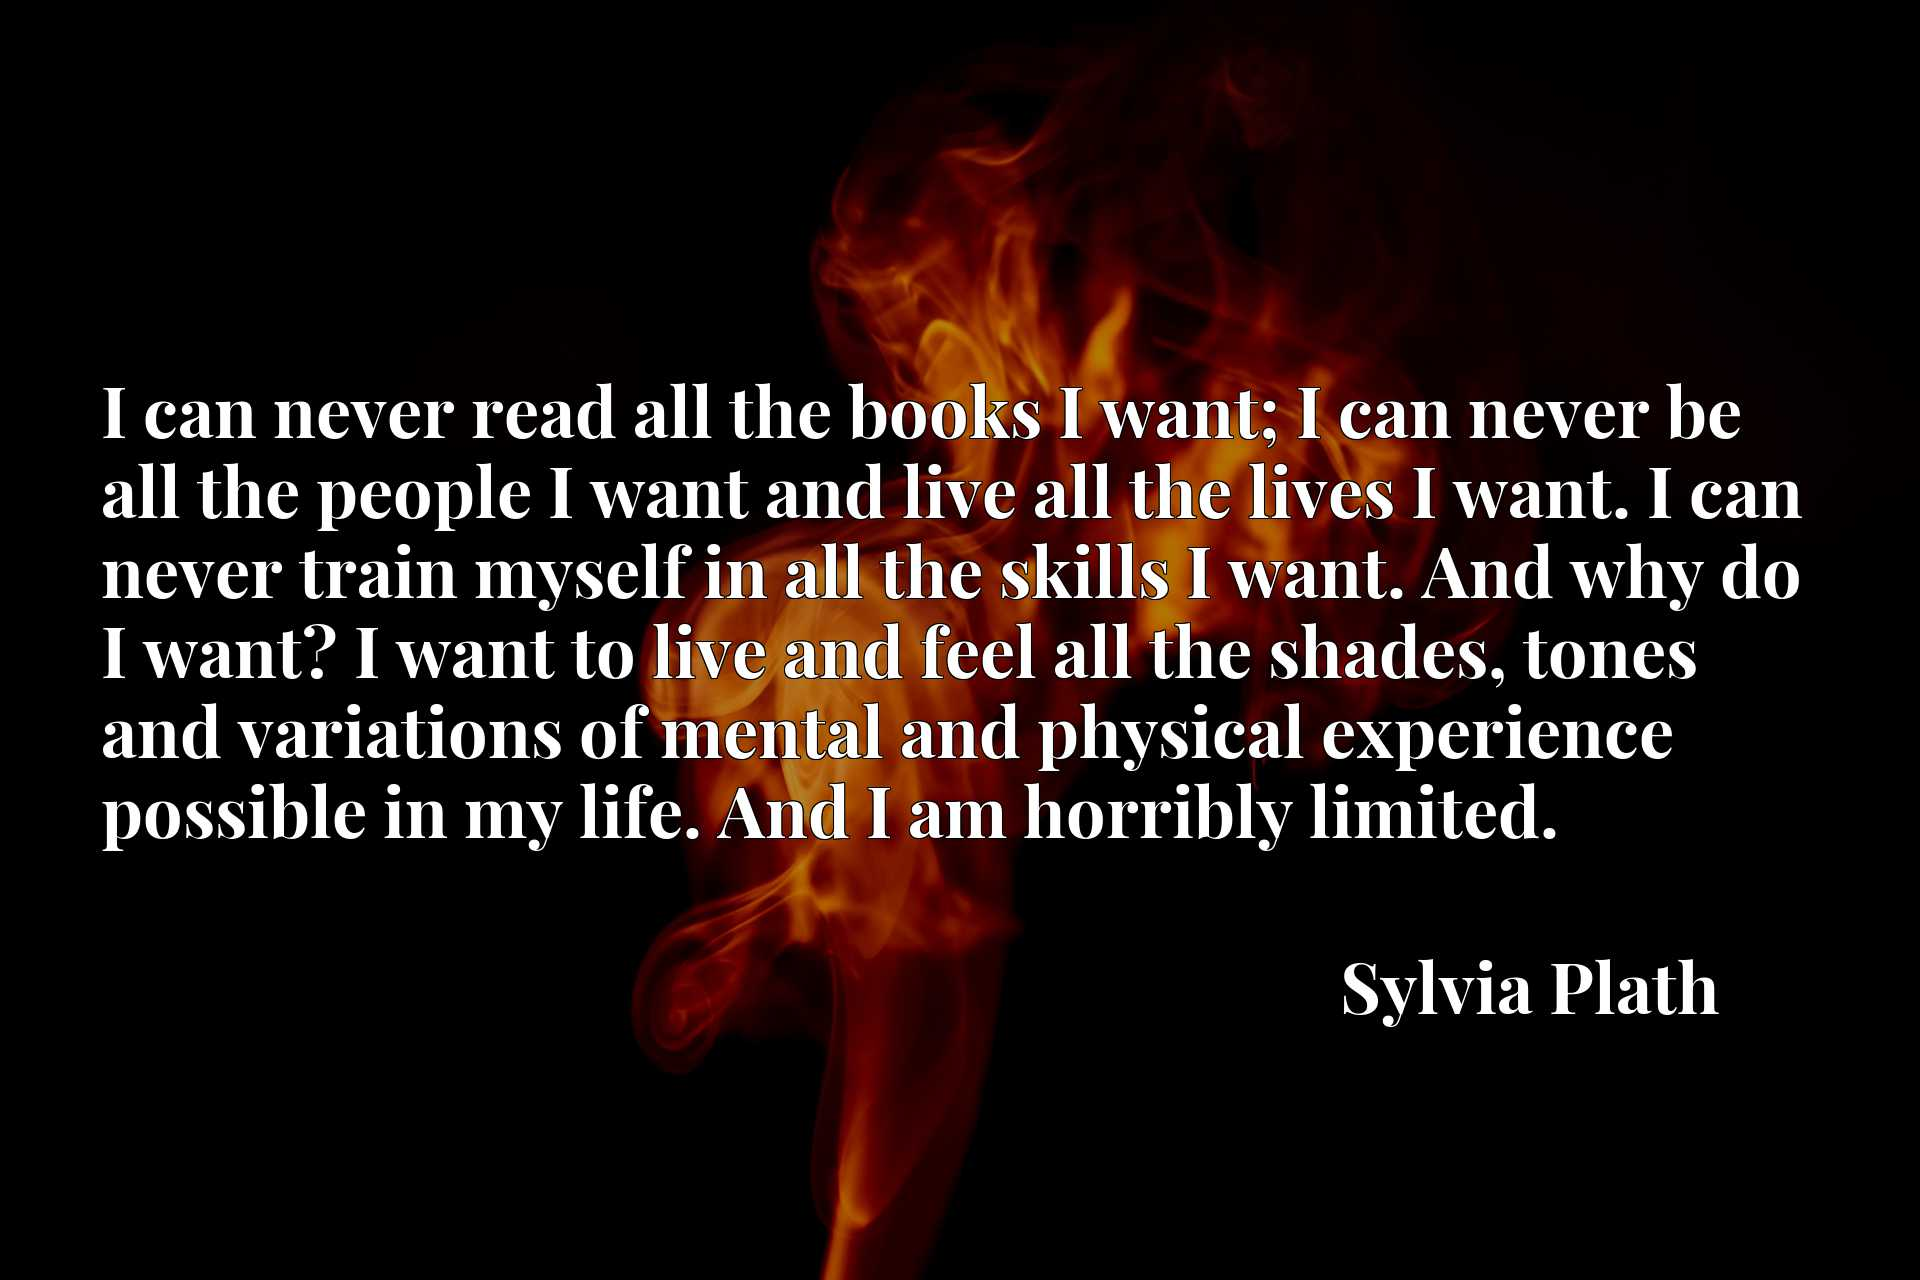 I can never read all the books I want; I can never be all the people I want and live all the lives I want. I can never train myself in all the skills I want. And why do I want? I want to live and feel all the shades, tones and variations of mental and physical experience possible in my life. And I am horribly limited.